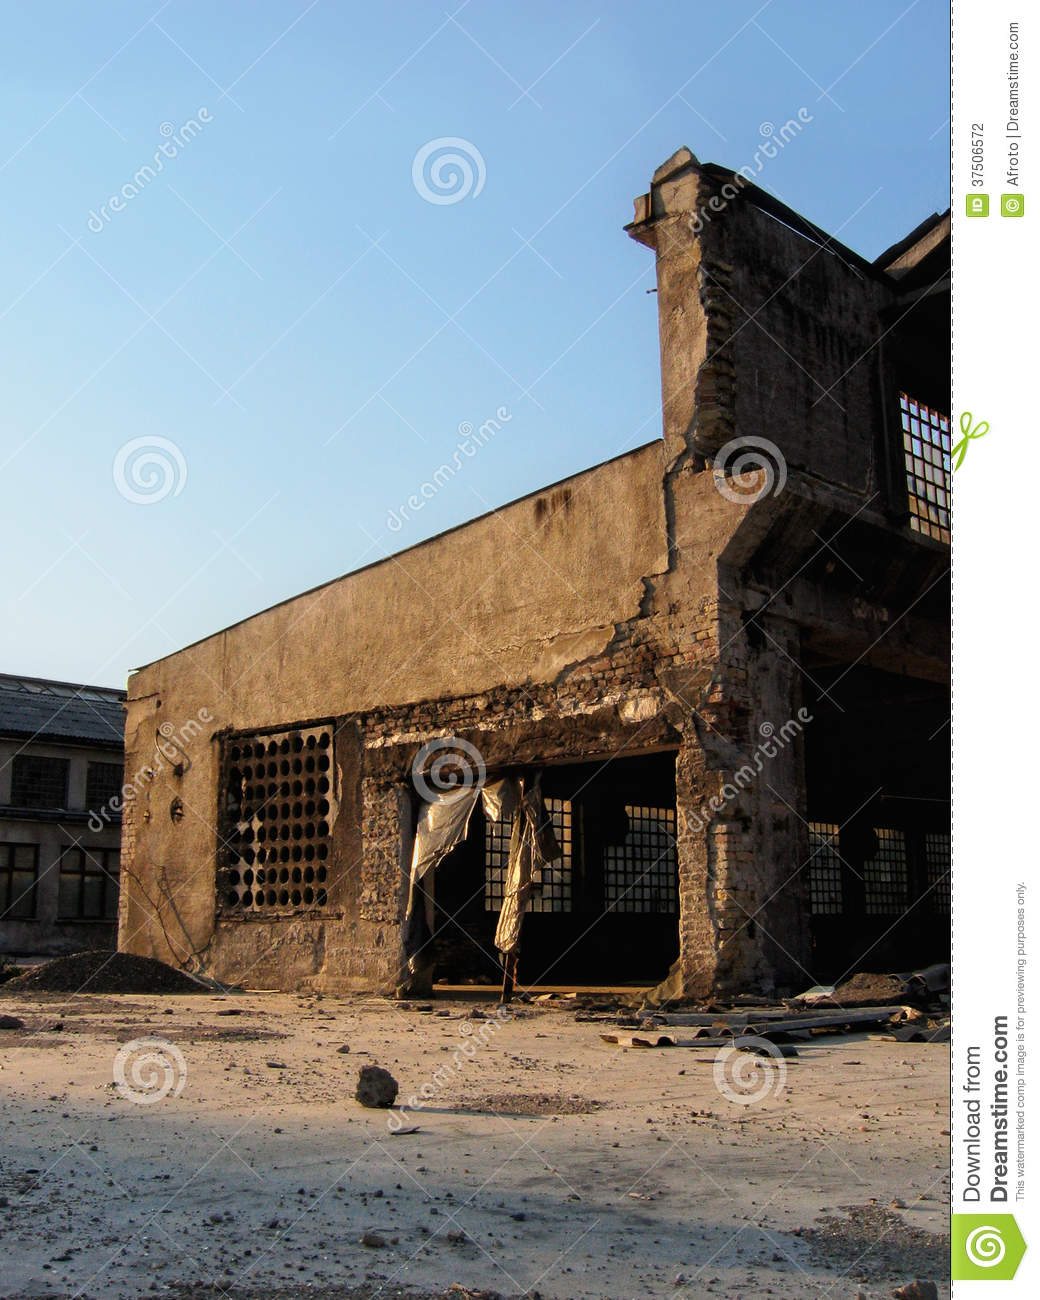 Old Abandoned Factory Stock Photo. Image Of Dirty